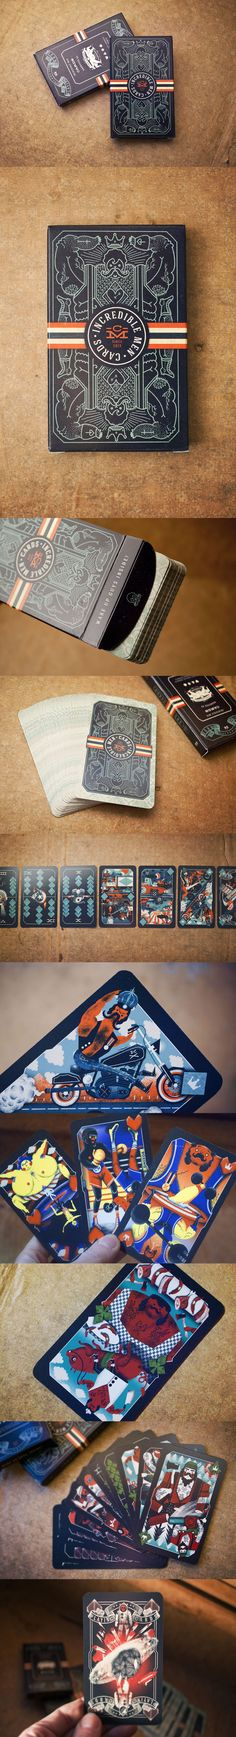 Illustrated Playing Cards - The illustration is nice - but I really like the colour scheme for this - L Graphic Design Illustration, Graphic Design Art, Typography Design, Web Design, Print Design, Playing Cards Art, Playing Card Design, Packaging Design, Branding Design